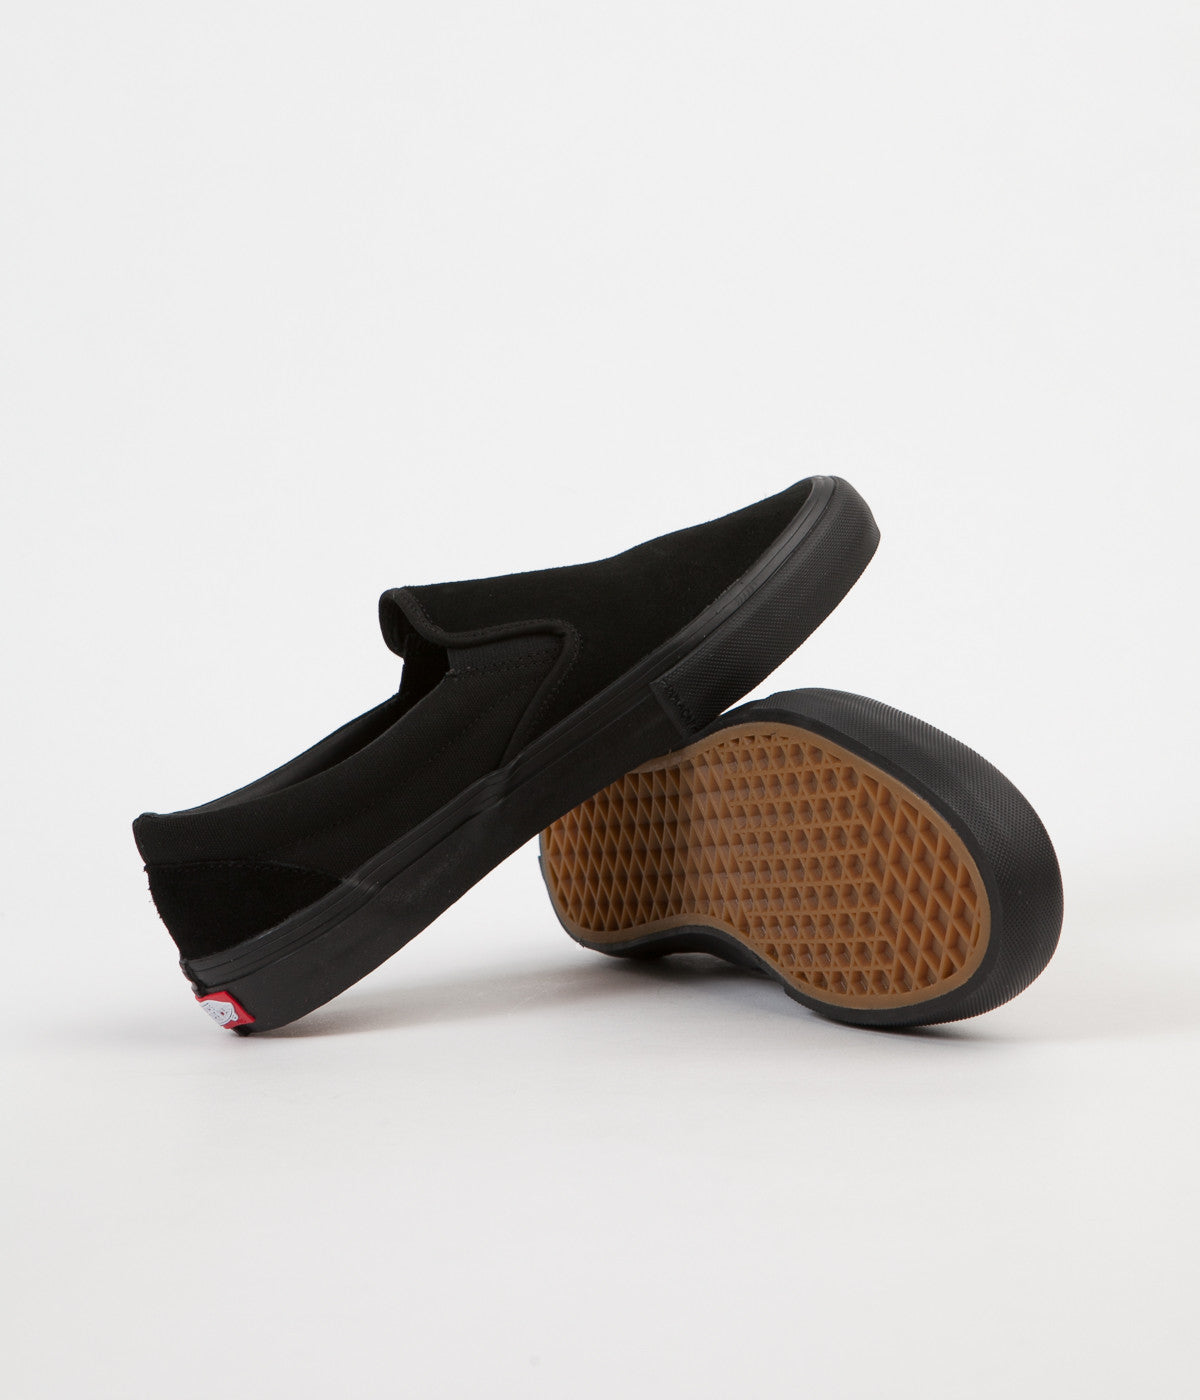 Vans Slip On Pro Shoes - Blackout